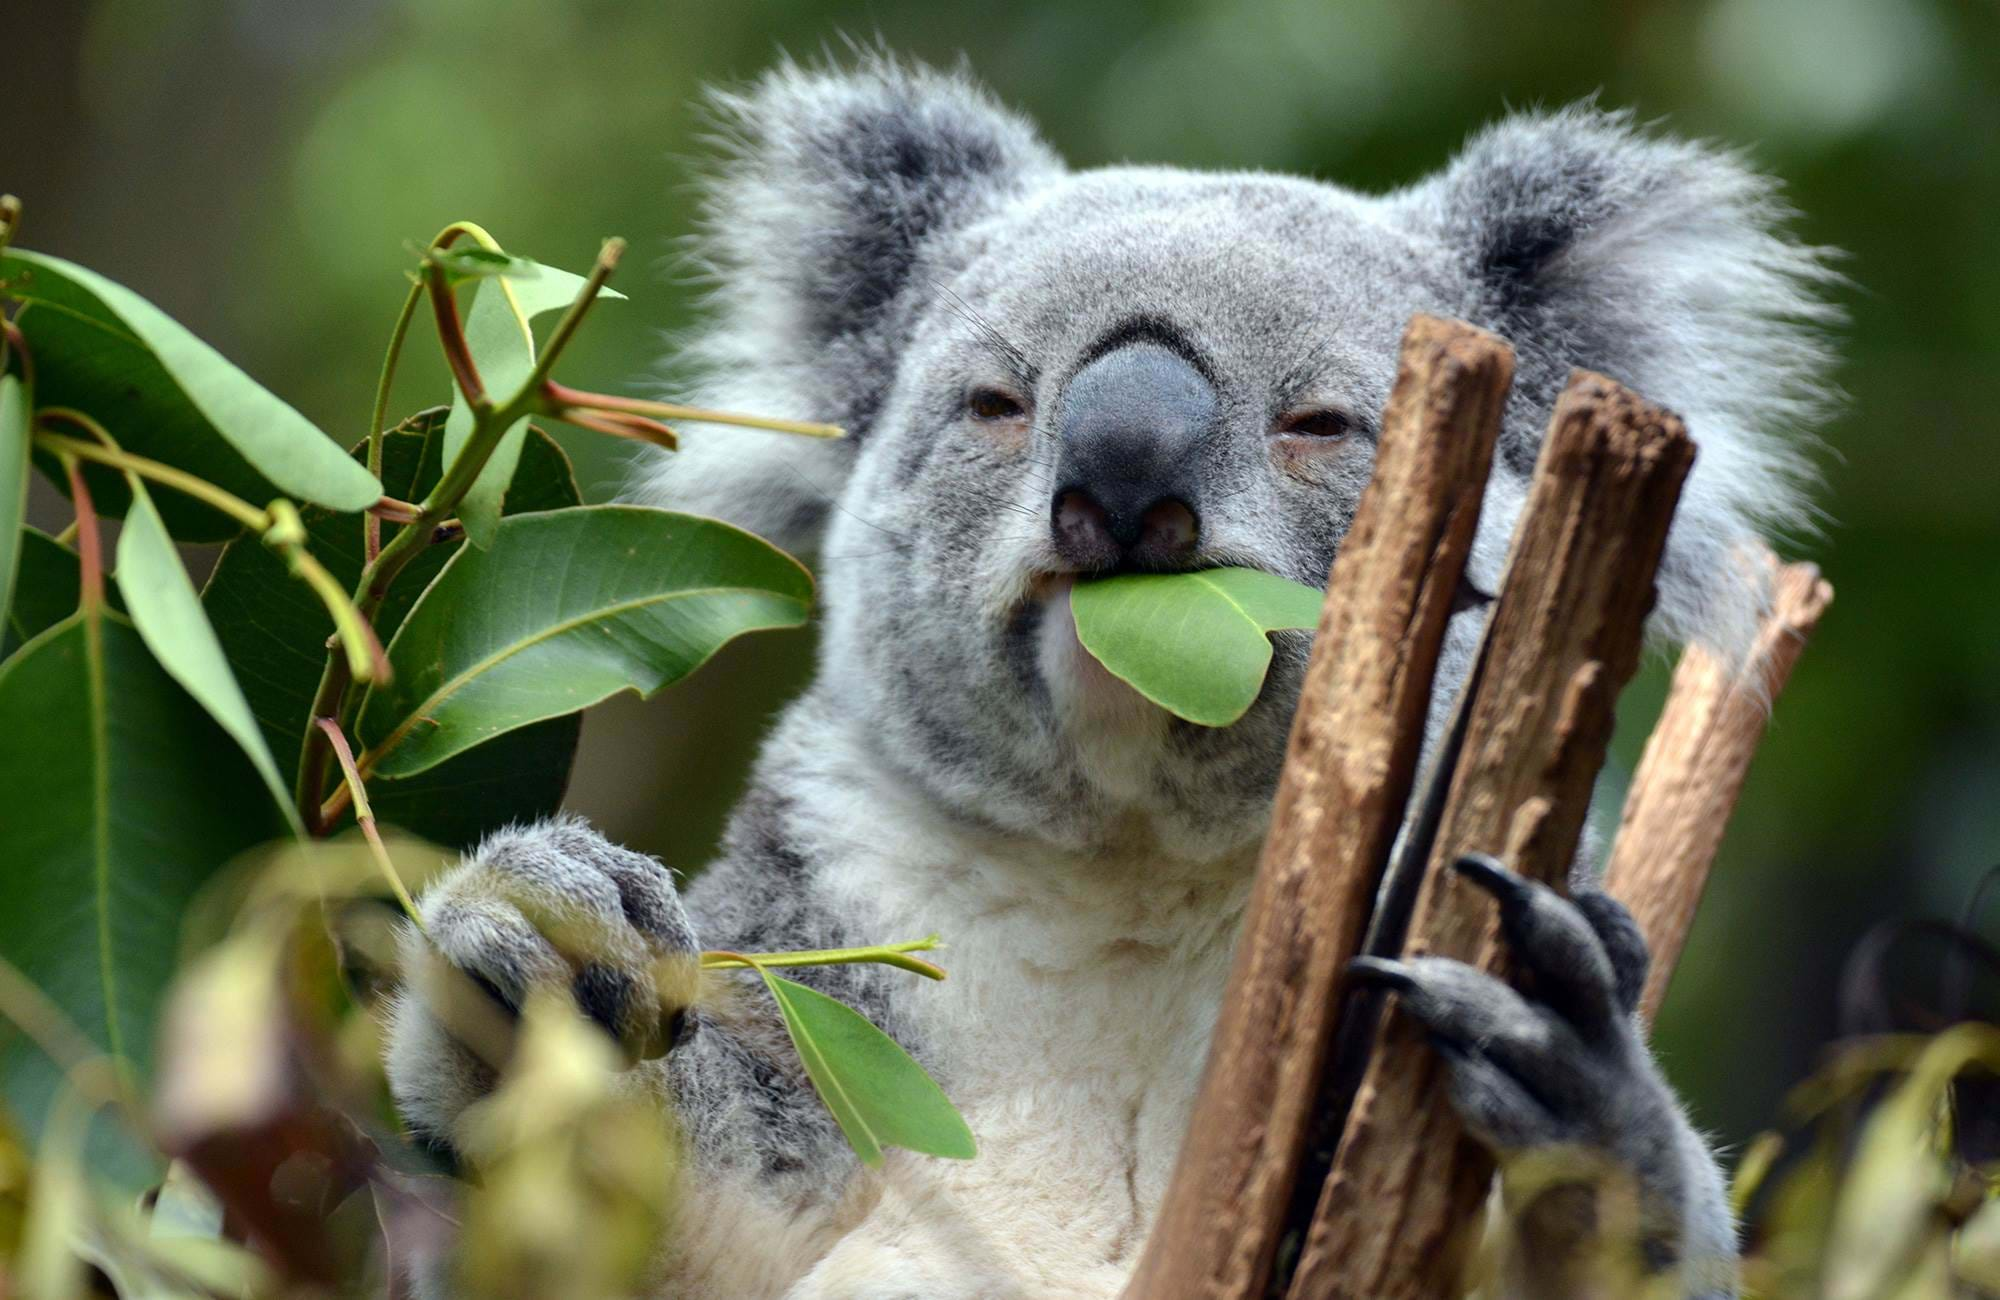 meet the cute koalas in the trees while you study your master in brisbane